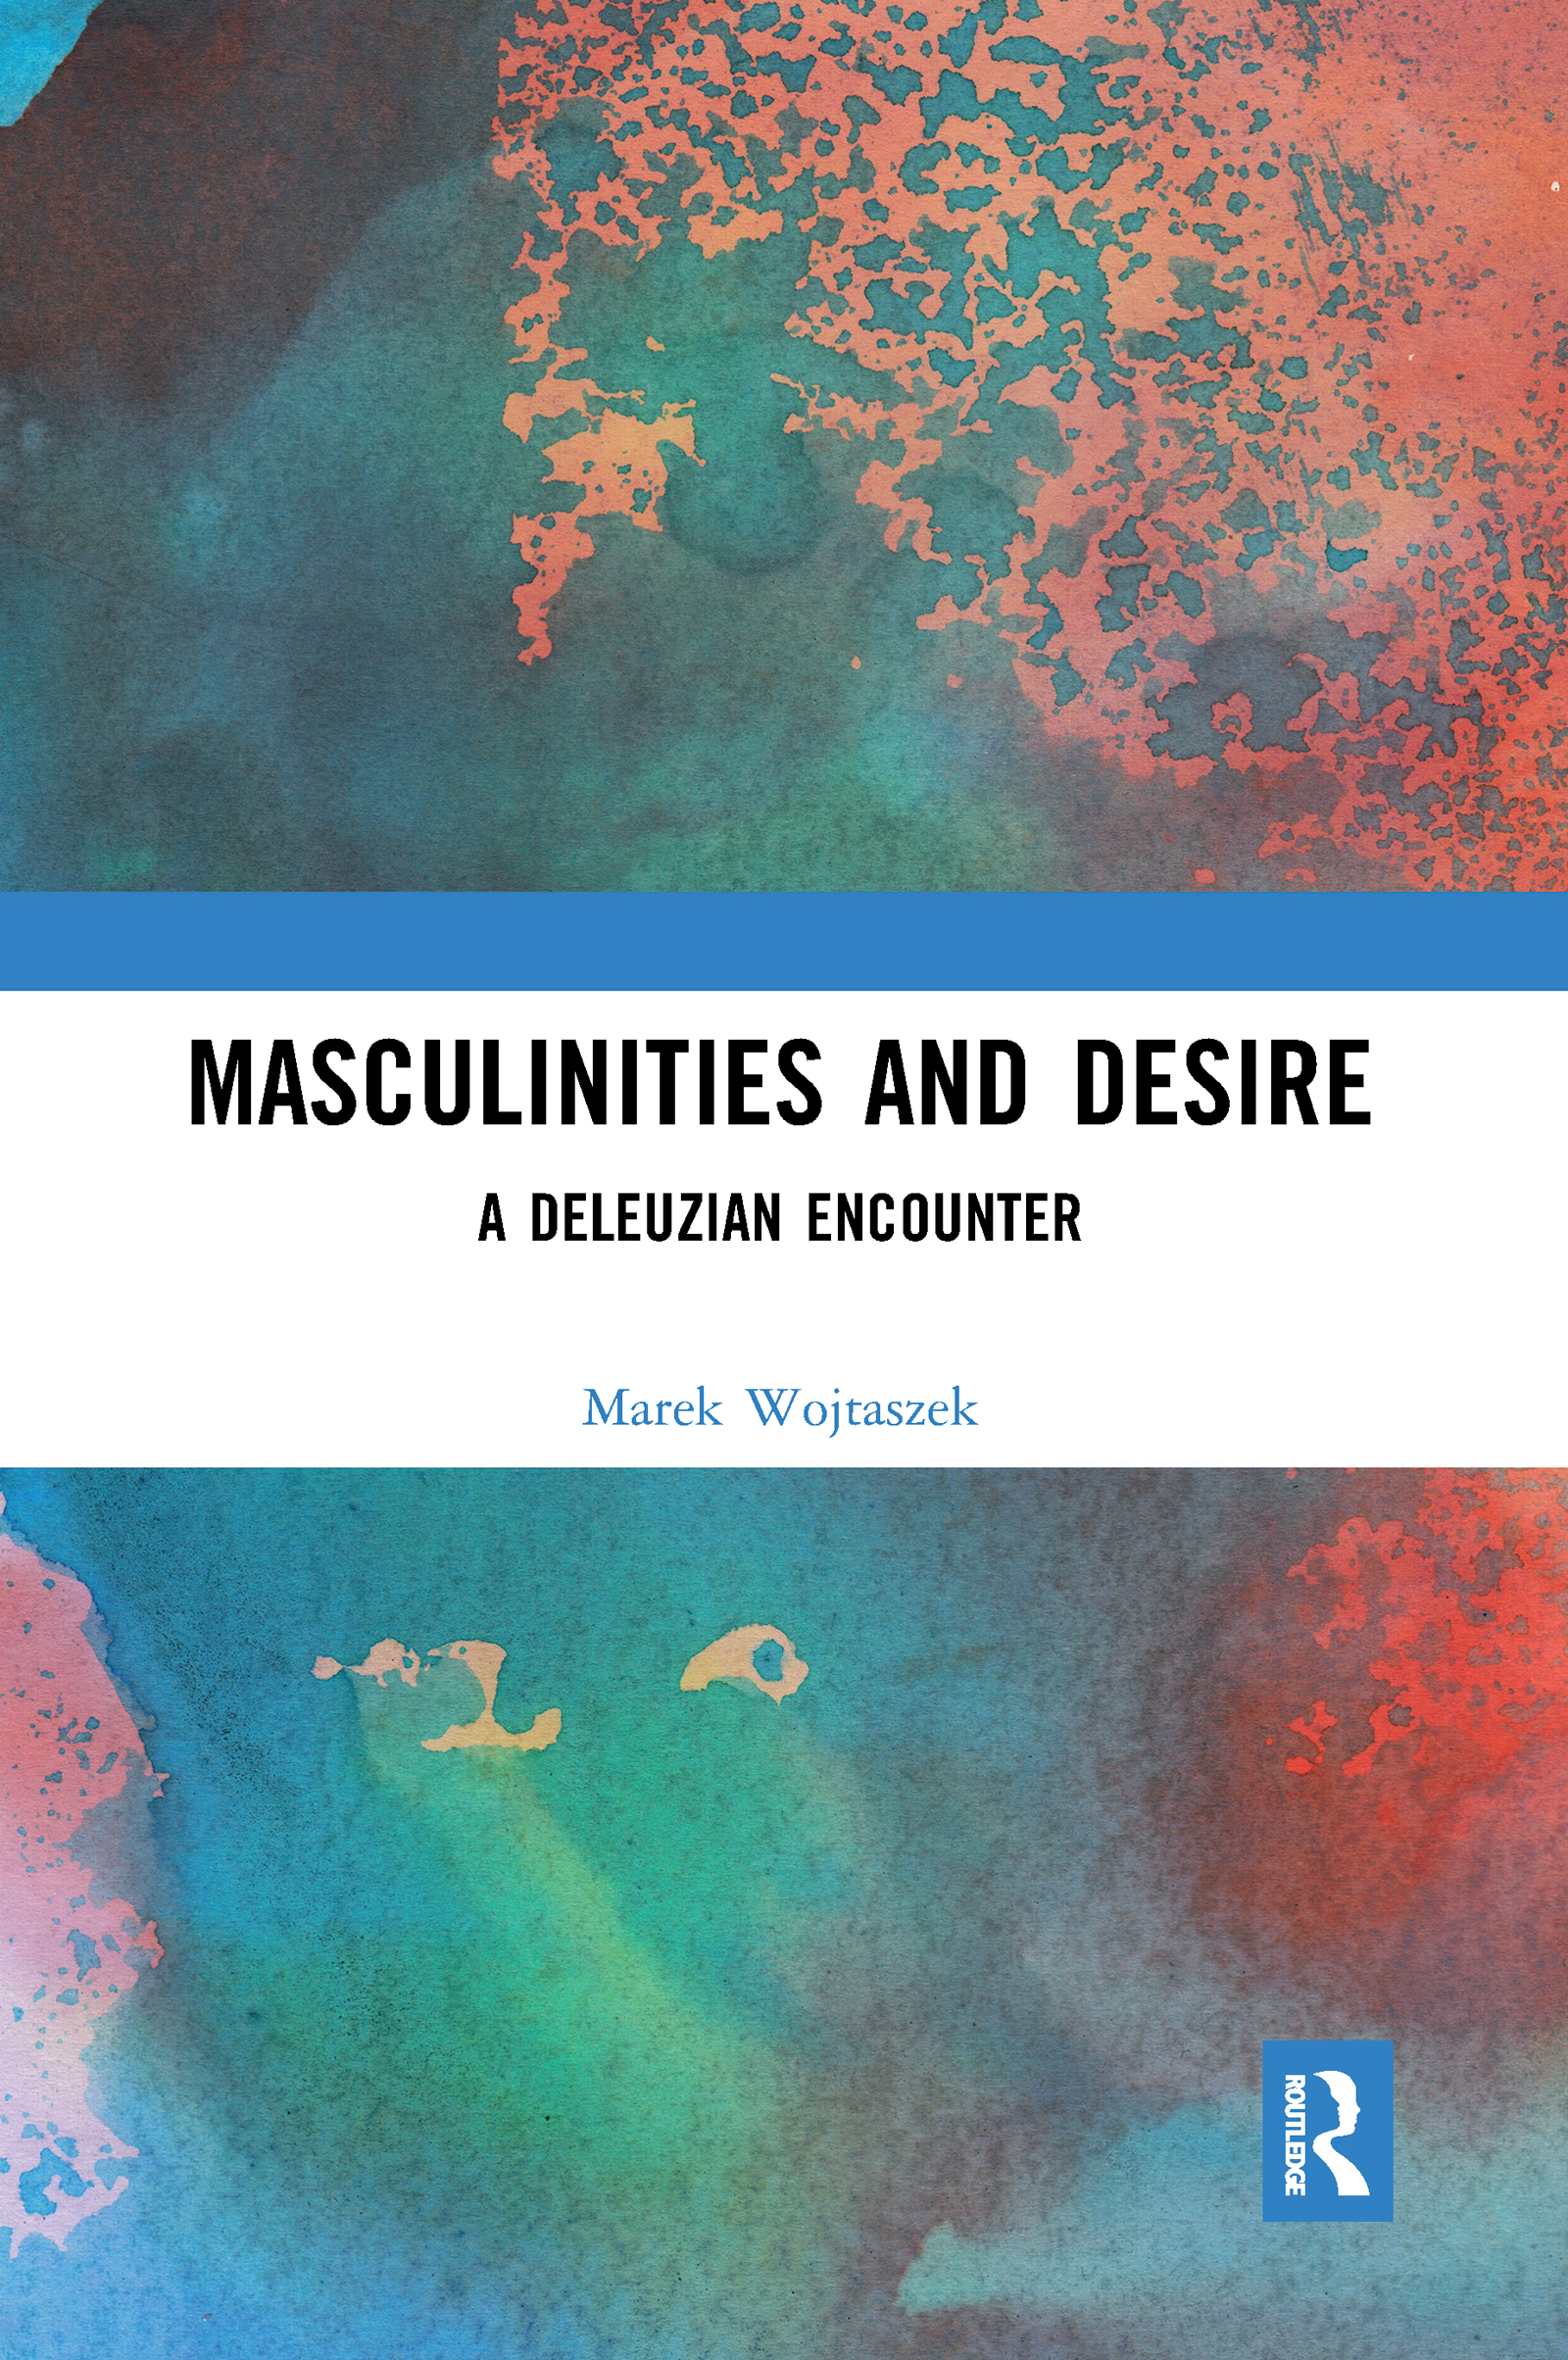 Masculinities and Desire